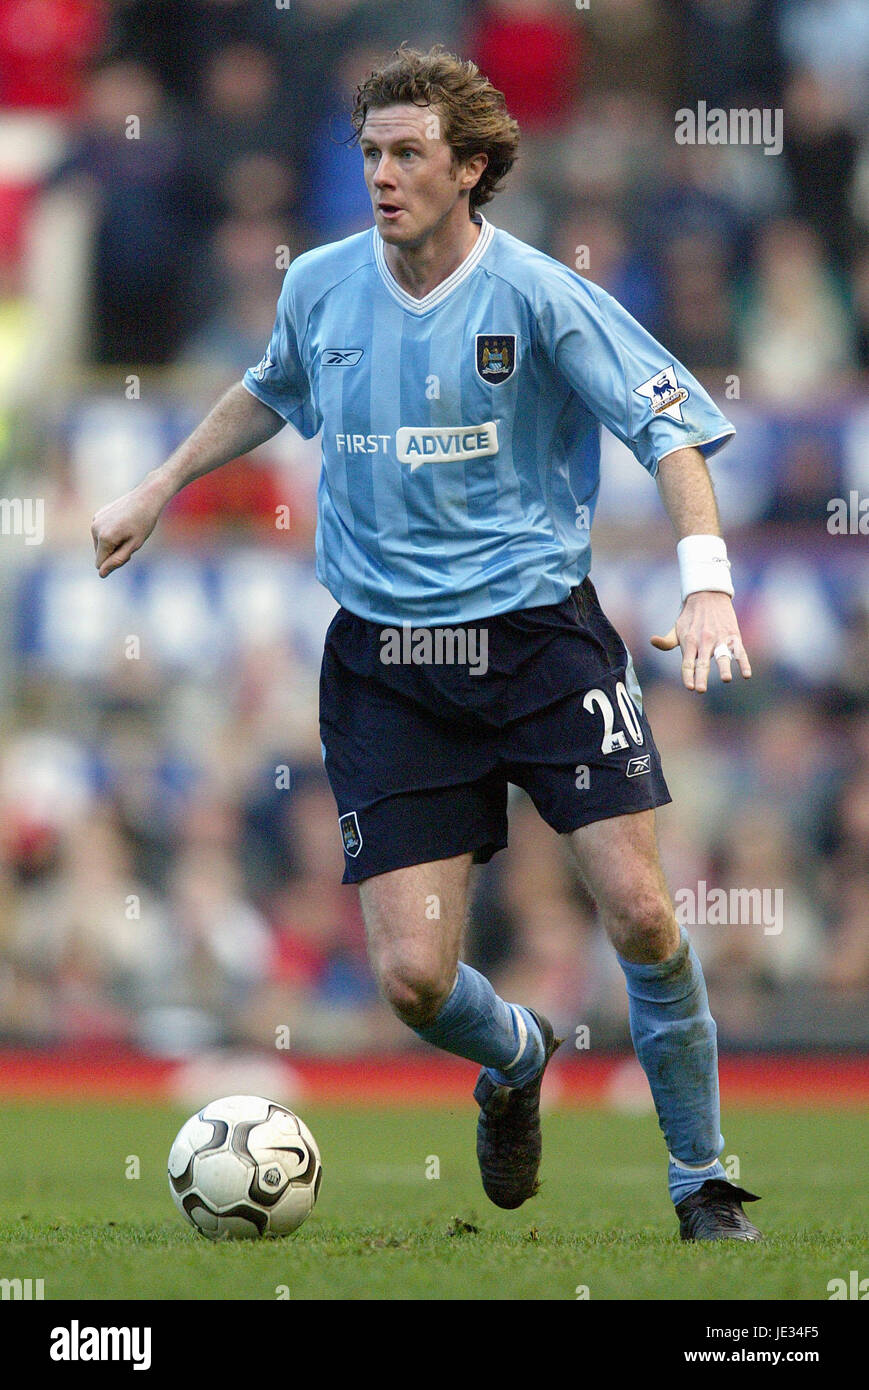 e46bdab6d STEVE MCMANAMAN MANCHESTER CITY FC OLD TRAFFORD MANCHESTER ENGLAND 13  December 2003 - Stock Image